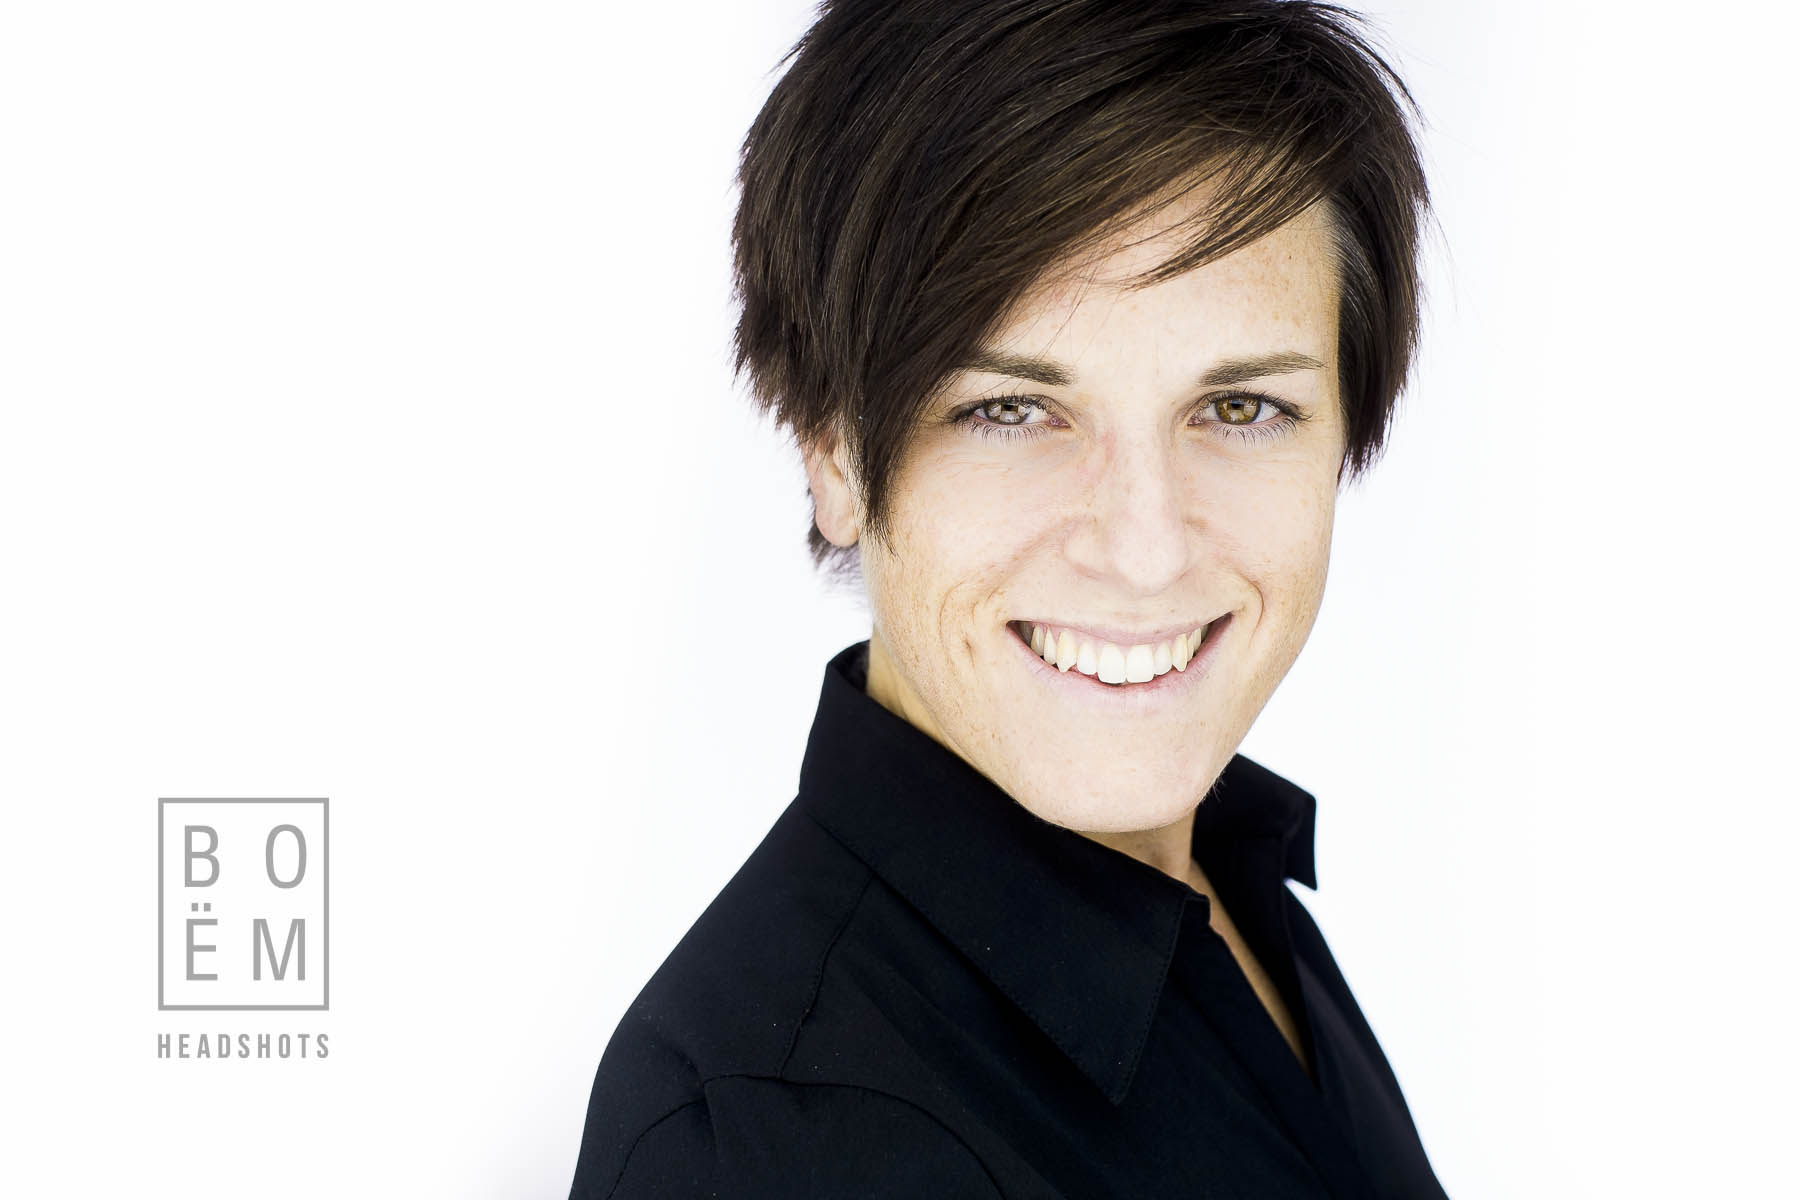 A professional headshot session for Mary, a personal trainer and close friend by Andre Goosen for Boem Headshots, the premier headshot photographer in Adelaide